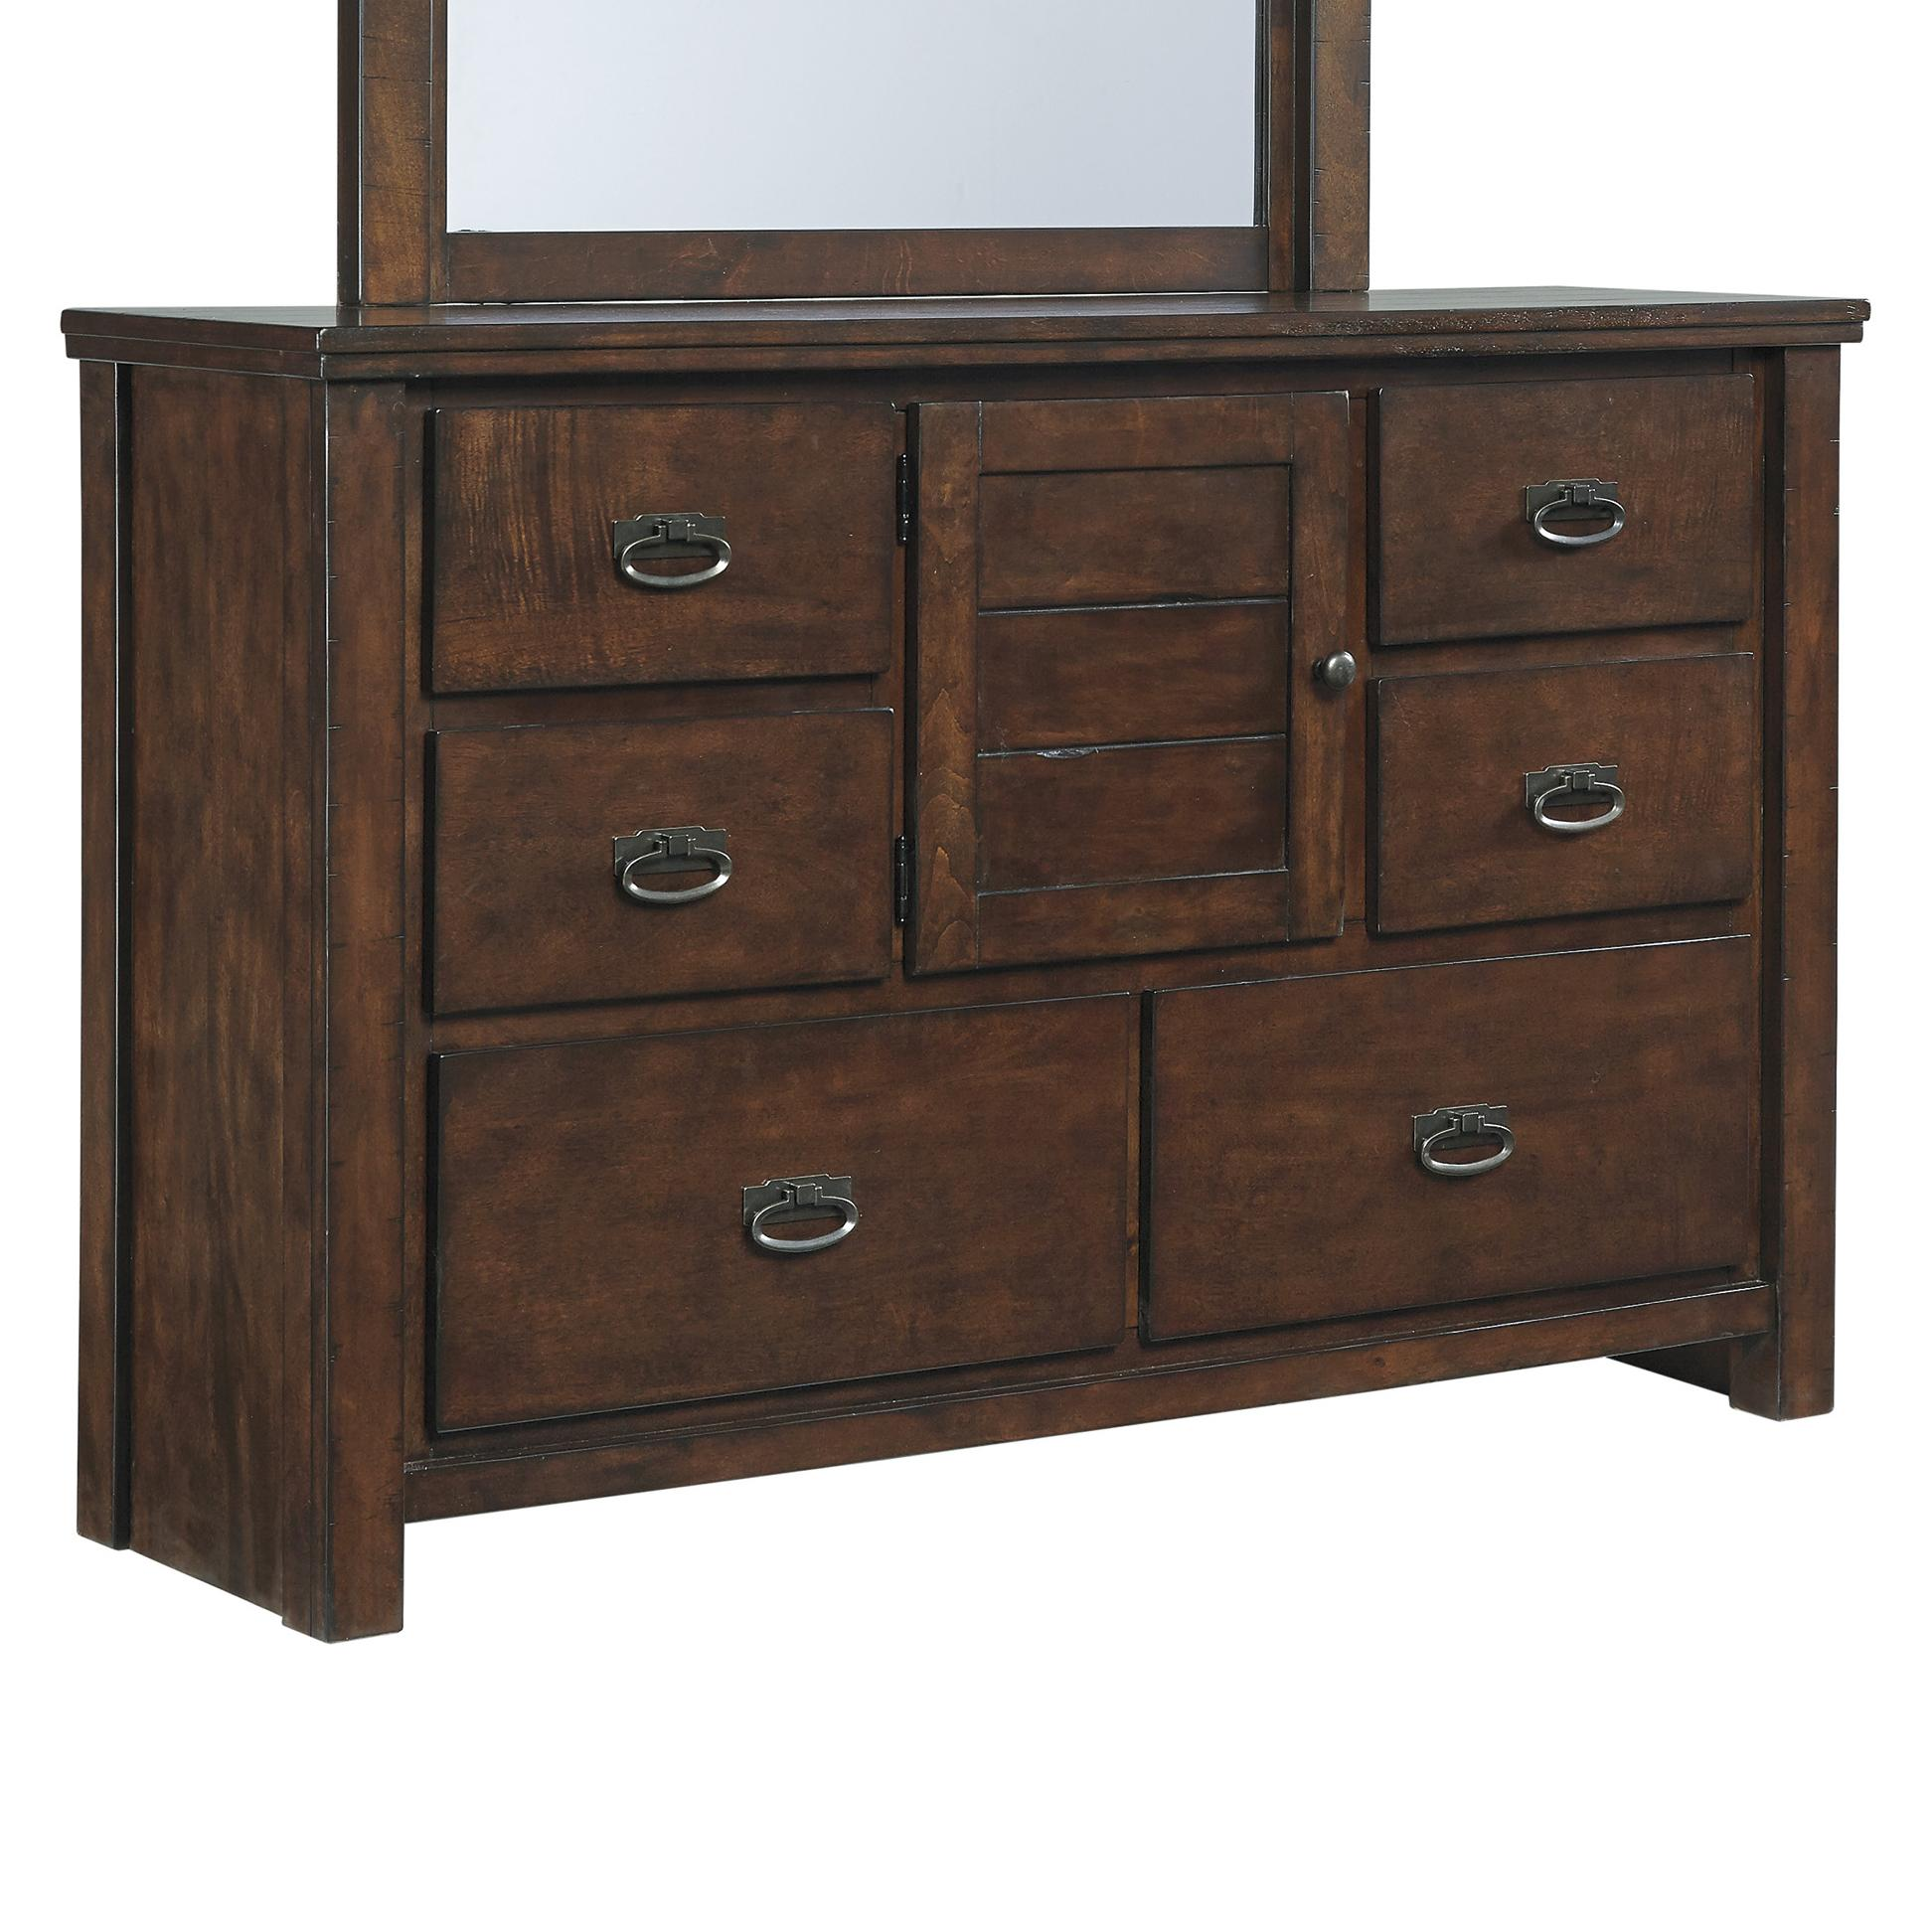 Signature Design By Ashley Ladiville B567 21 Dresser